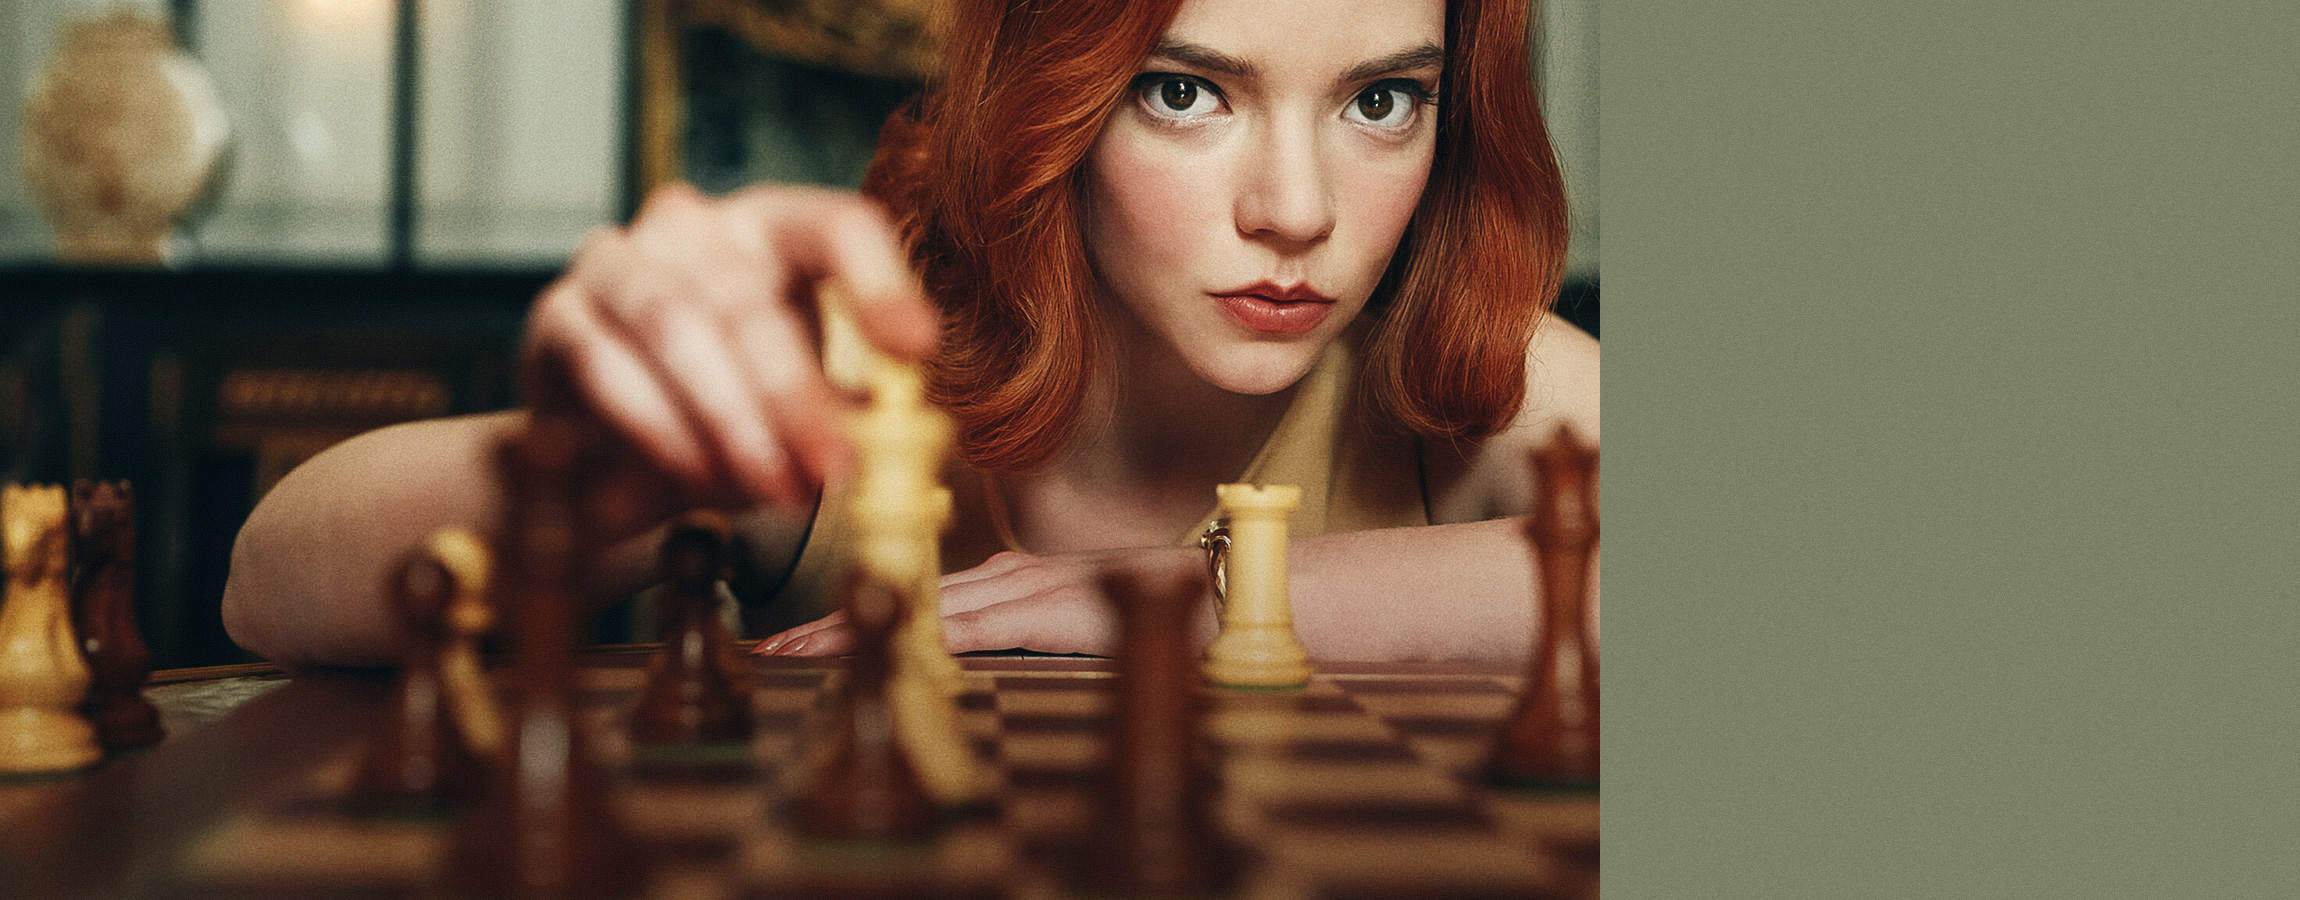 A woman with red hair holds a bishop chess piece